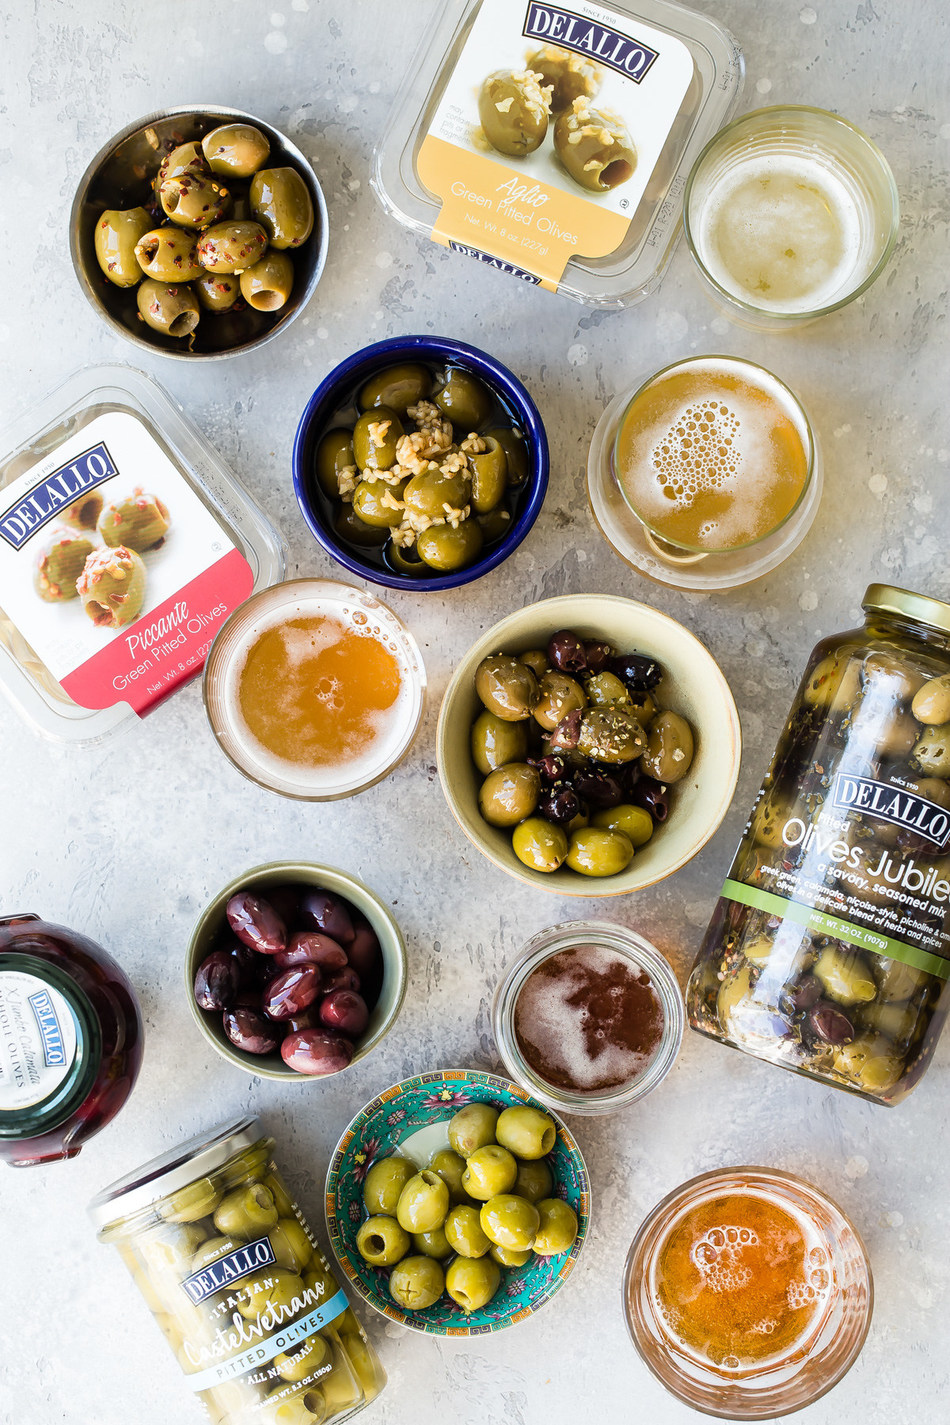 DeLallo's new guide on olives and beer gives you a game plan for your next entertaining occasion—from happy hour bites and movie night snacking to springtime get-togethers and summer barbecues. Olives are a tasty alternative to the ordinary snacking carb, one that brings on the thirst with its salty, savory bliss.  Explore more at http://bit.ly/2Tt03Jt